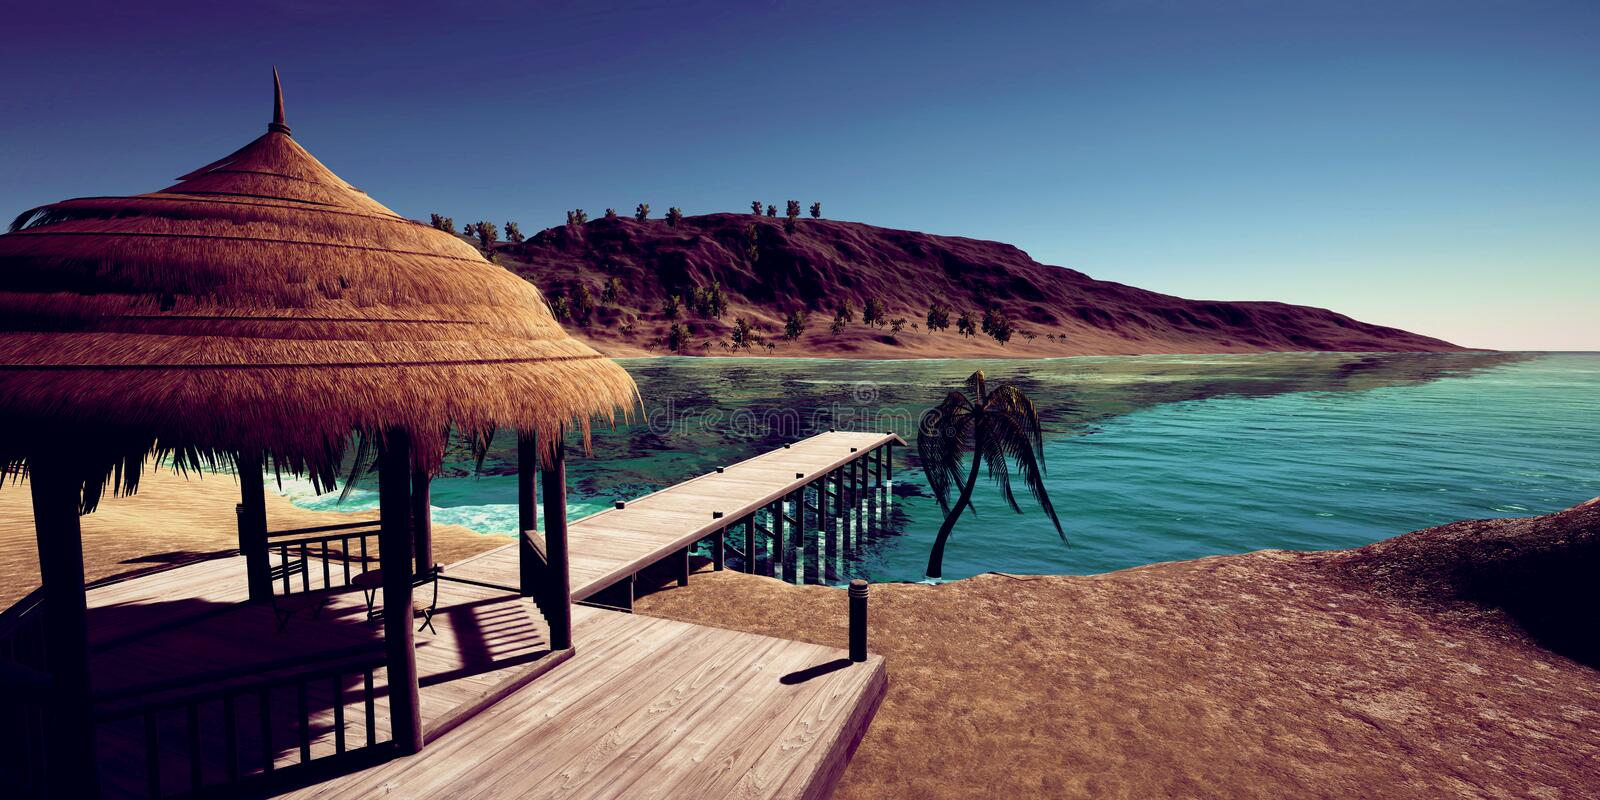 Extremely detailed and realistc high resolution 3D illustration of luxury vacation at a tropcial Island. Extremely detailed and realistc high resolution 3D image stock photos